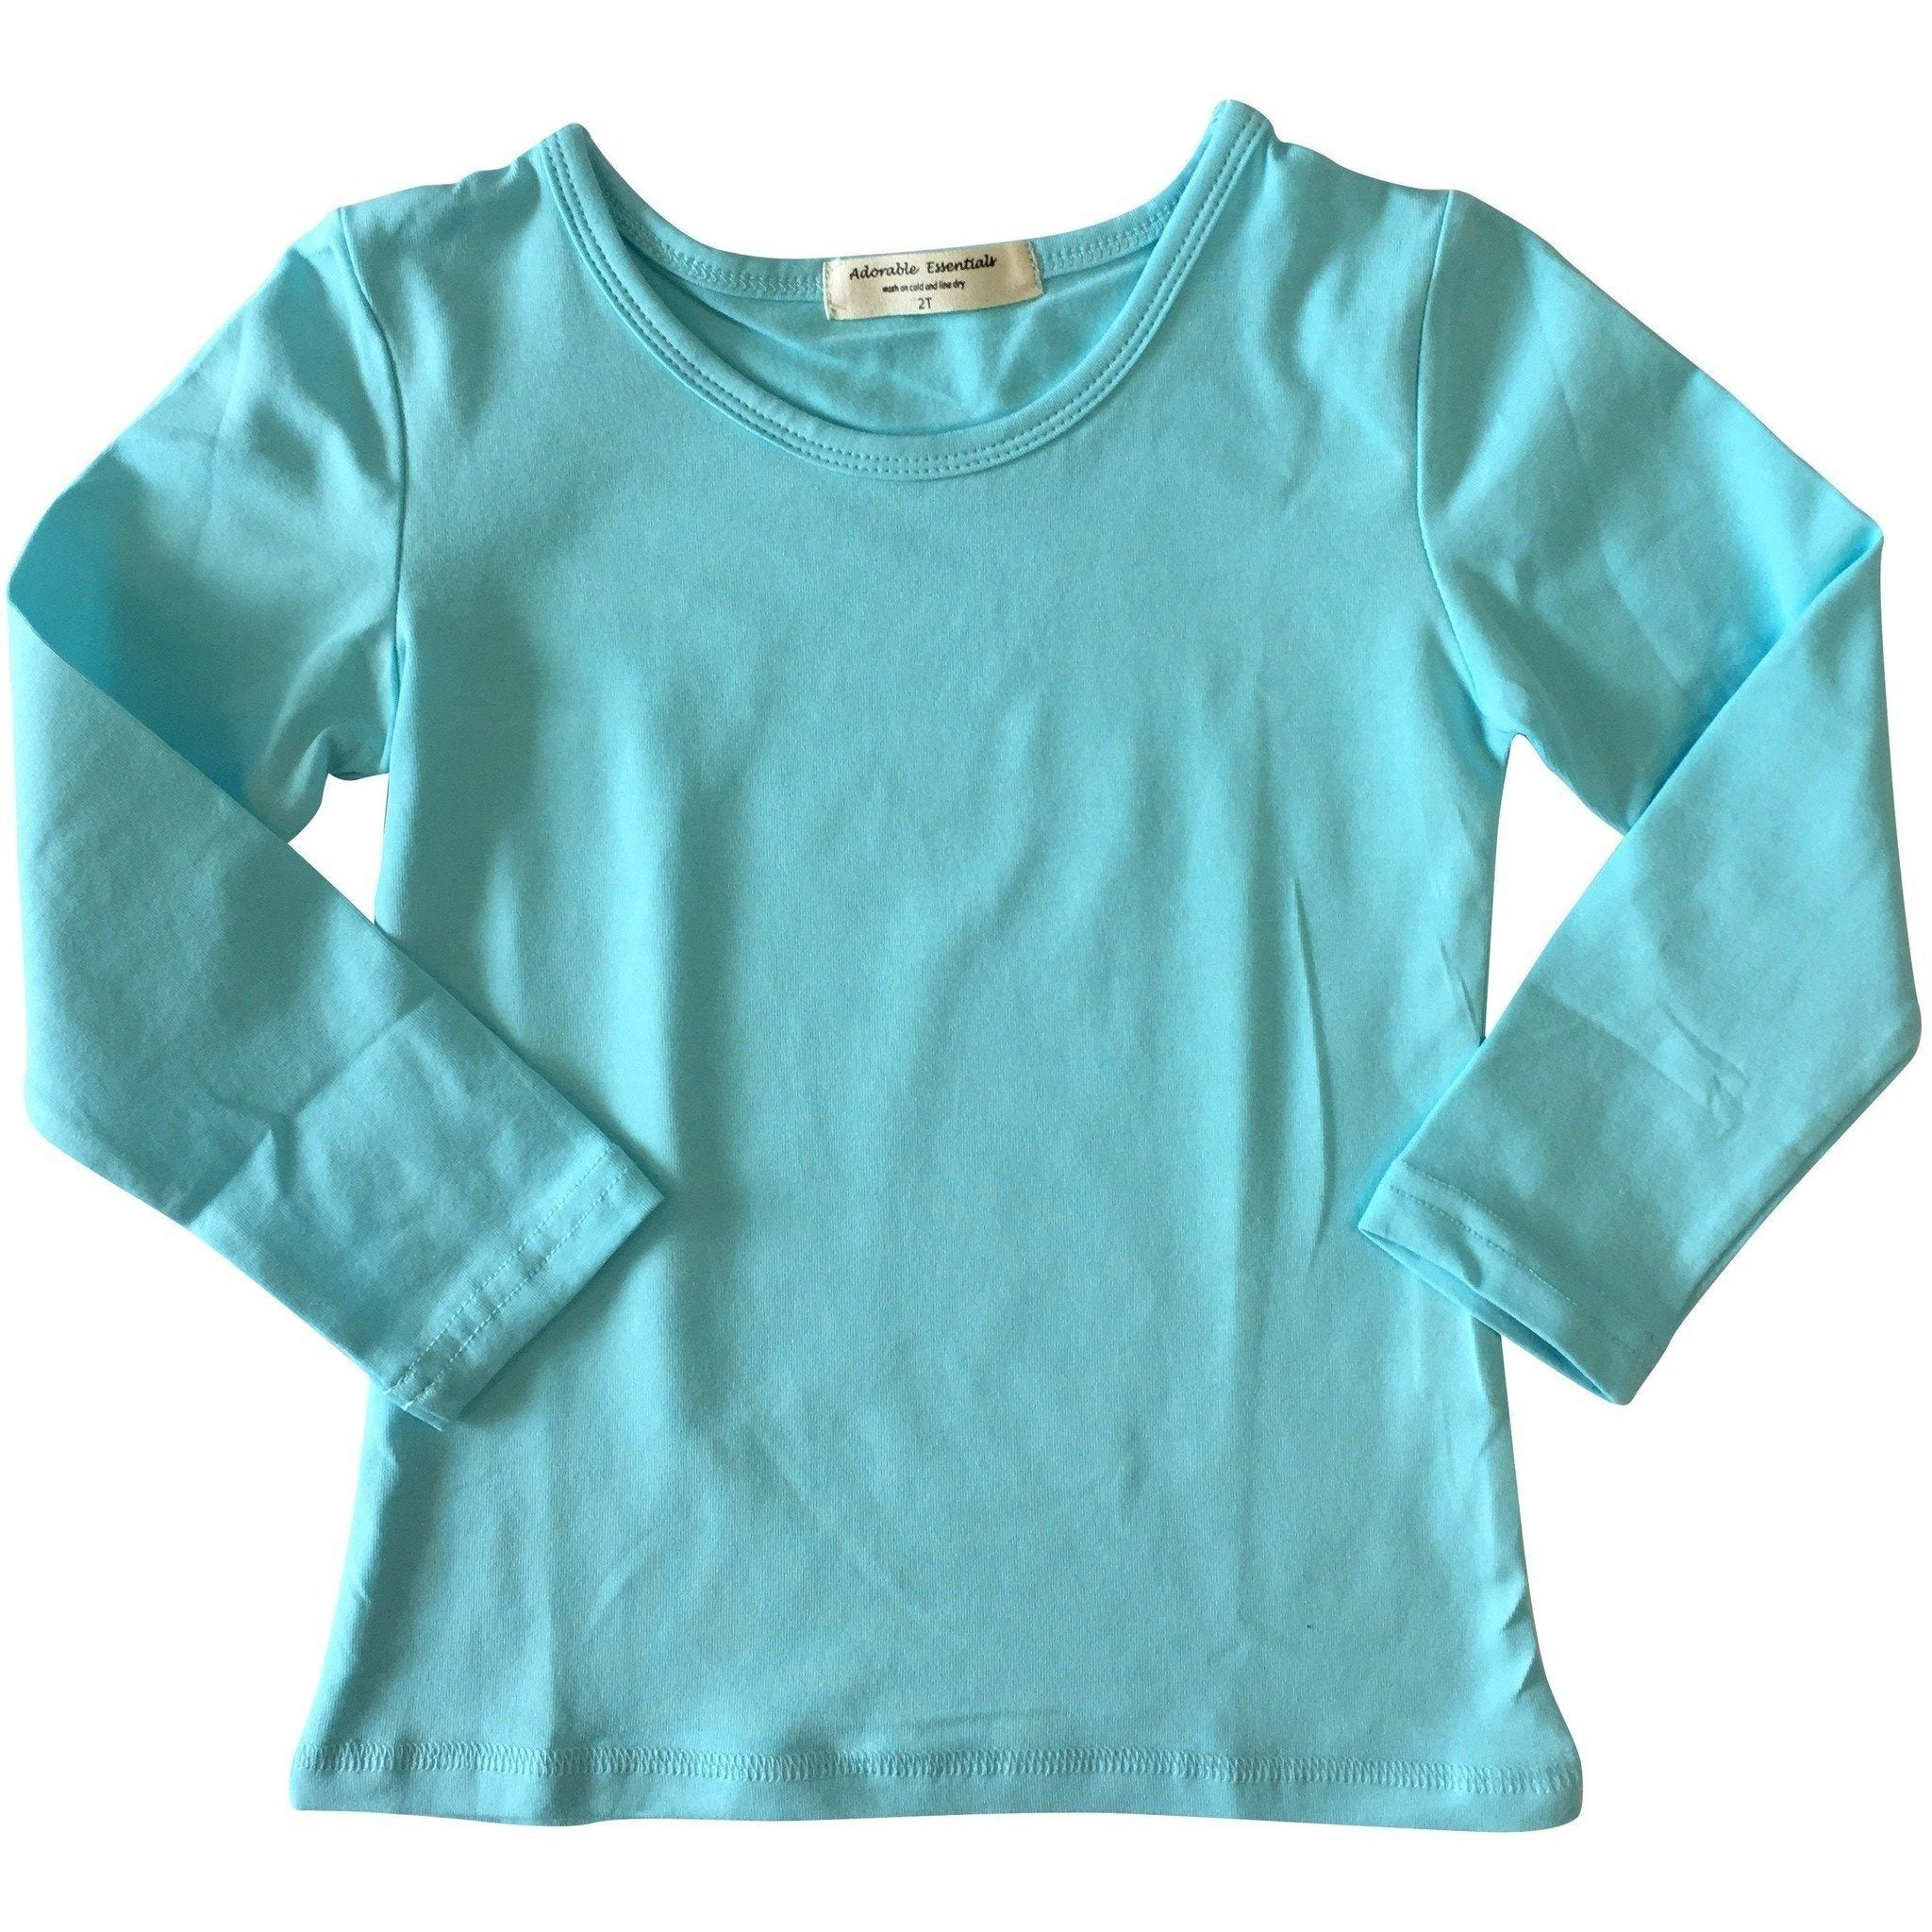 Adorable Essentials, Baby Simple Shirts,Baby Tops,Adorable Essentials, LLC